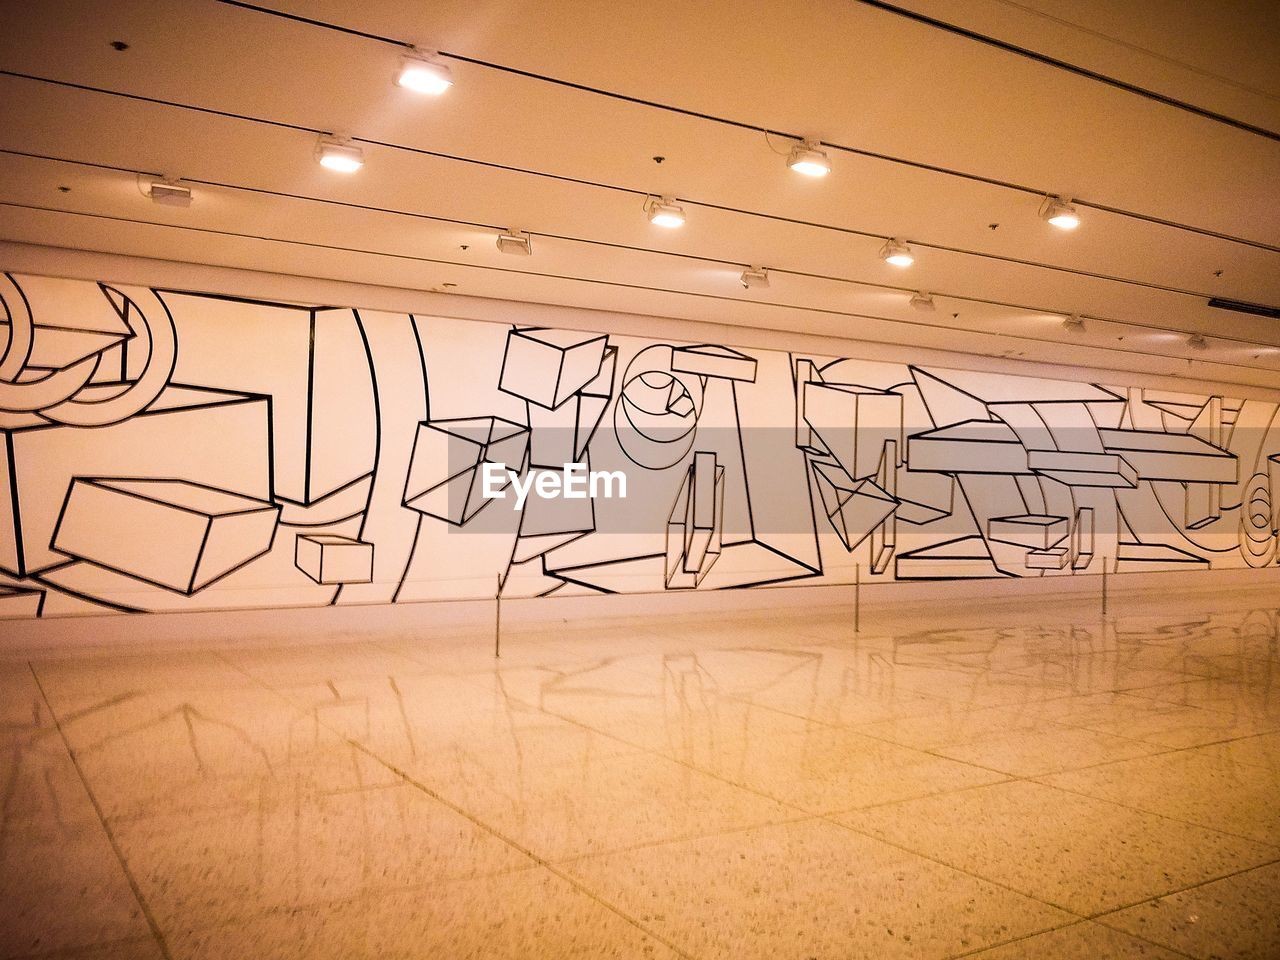 indoors, no people, architecture, art and craft, illuminated, flooring, wall - building feature, creativity, lighting equipment, built structure, drawing - art product, sketch, reflection, building, ceiling, empty, orange color, electricity, graffiti